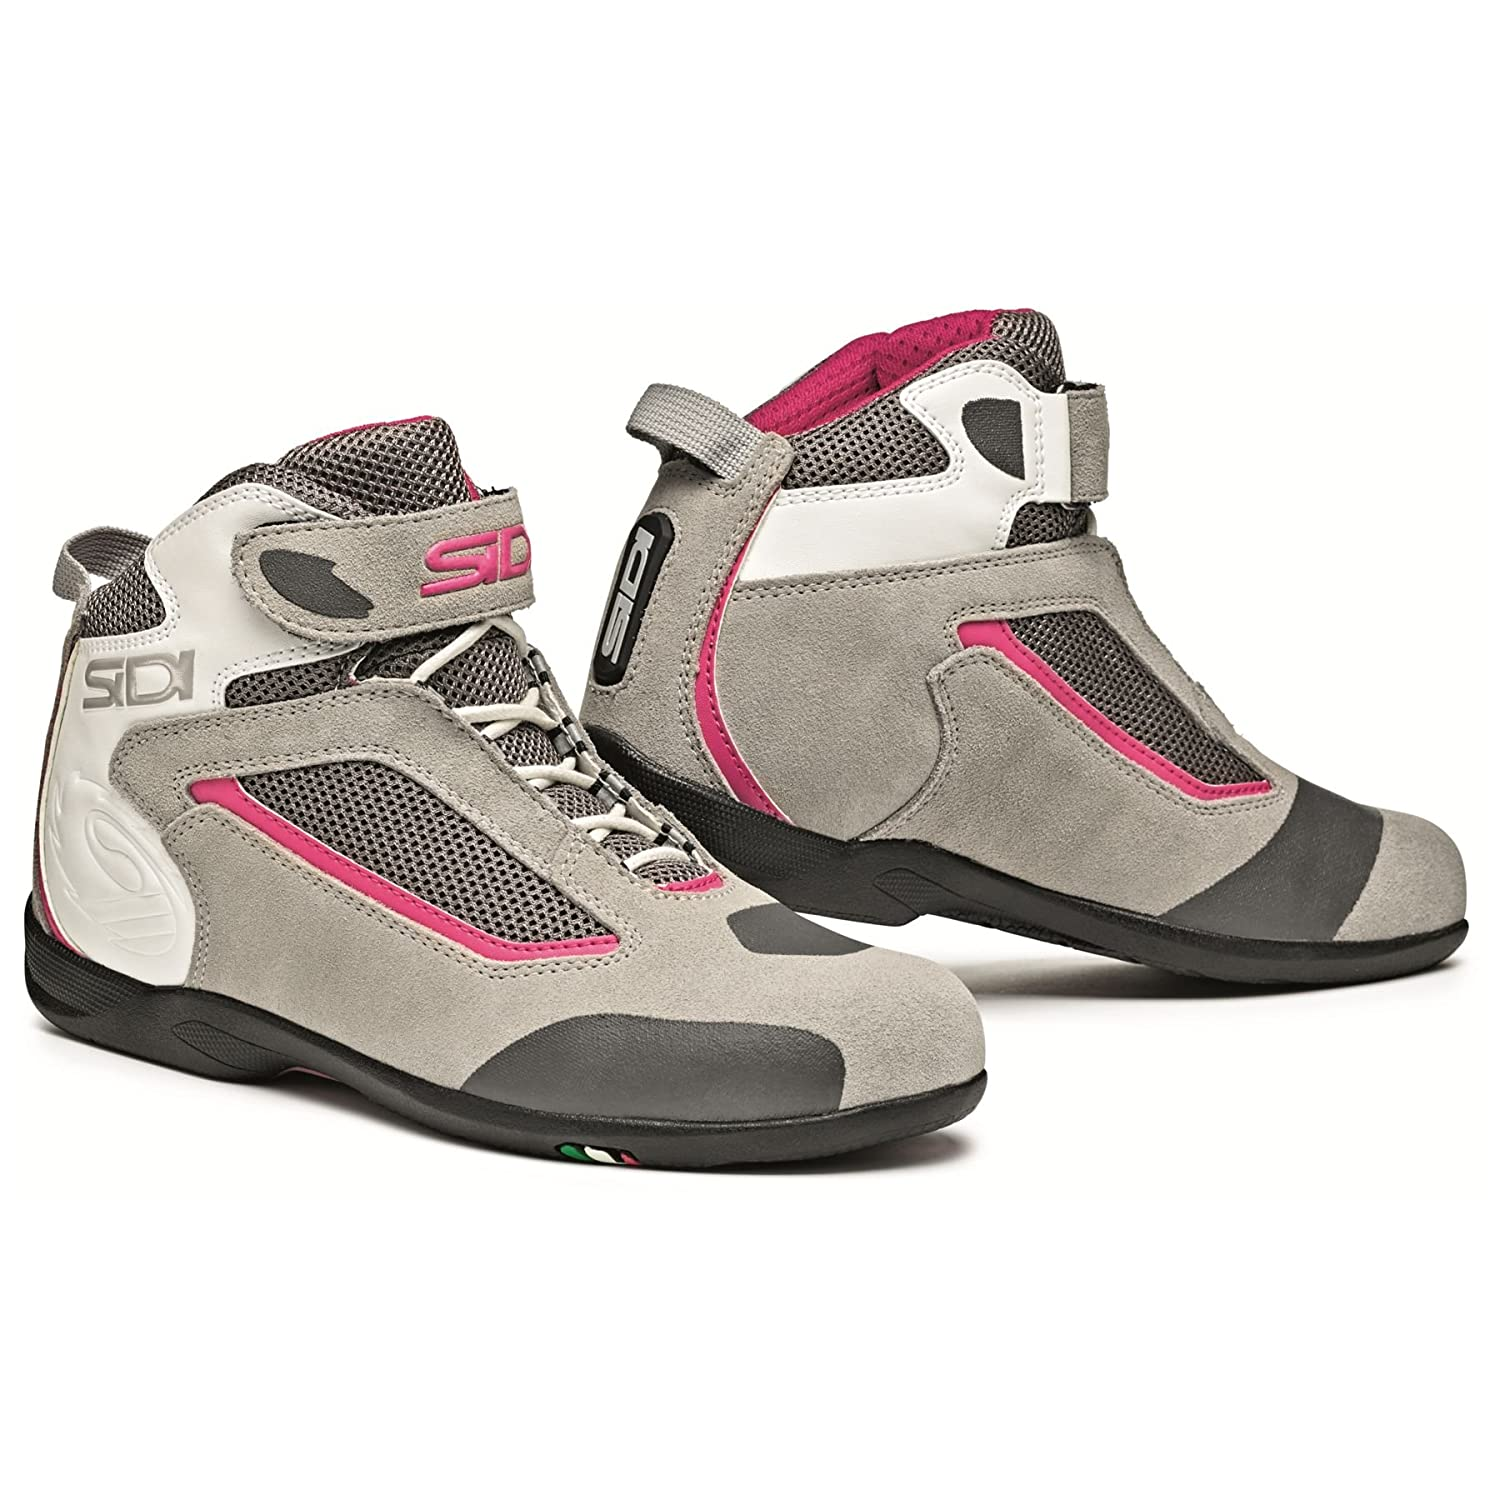 Sidi Gas Lei Ladies Motorcycle Shoe Grey/Pink US9.5/EU42 (More Size Options) SDS-GSL-GYGY